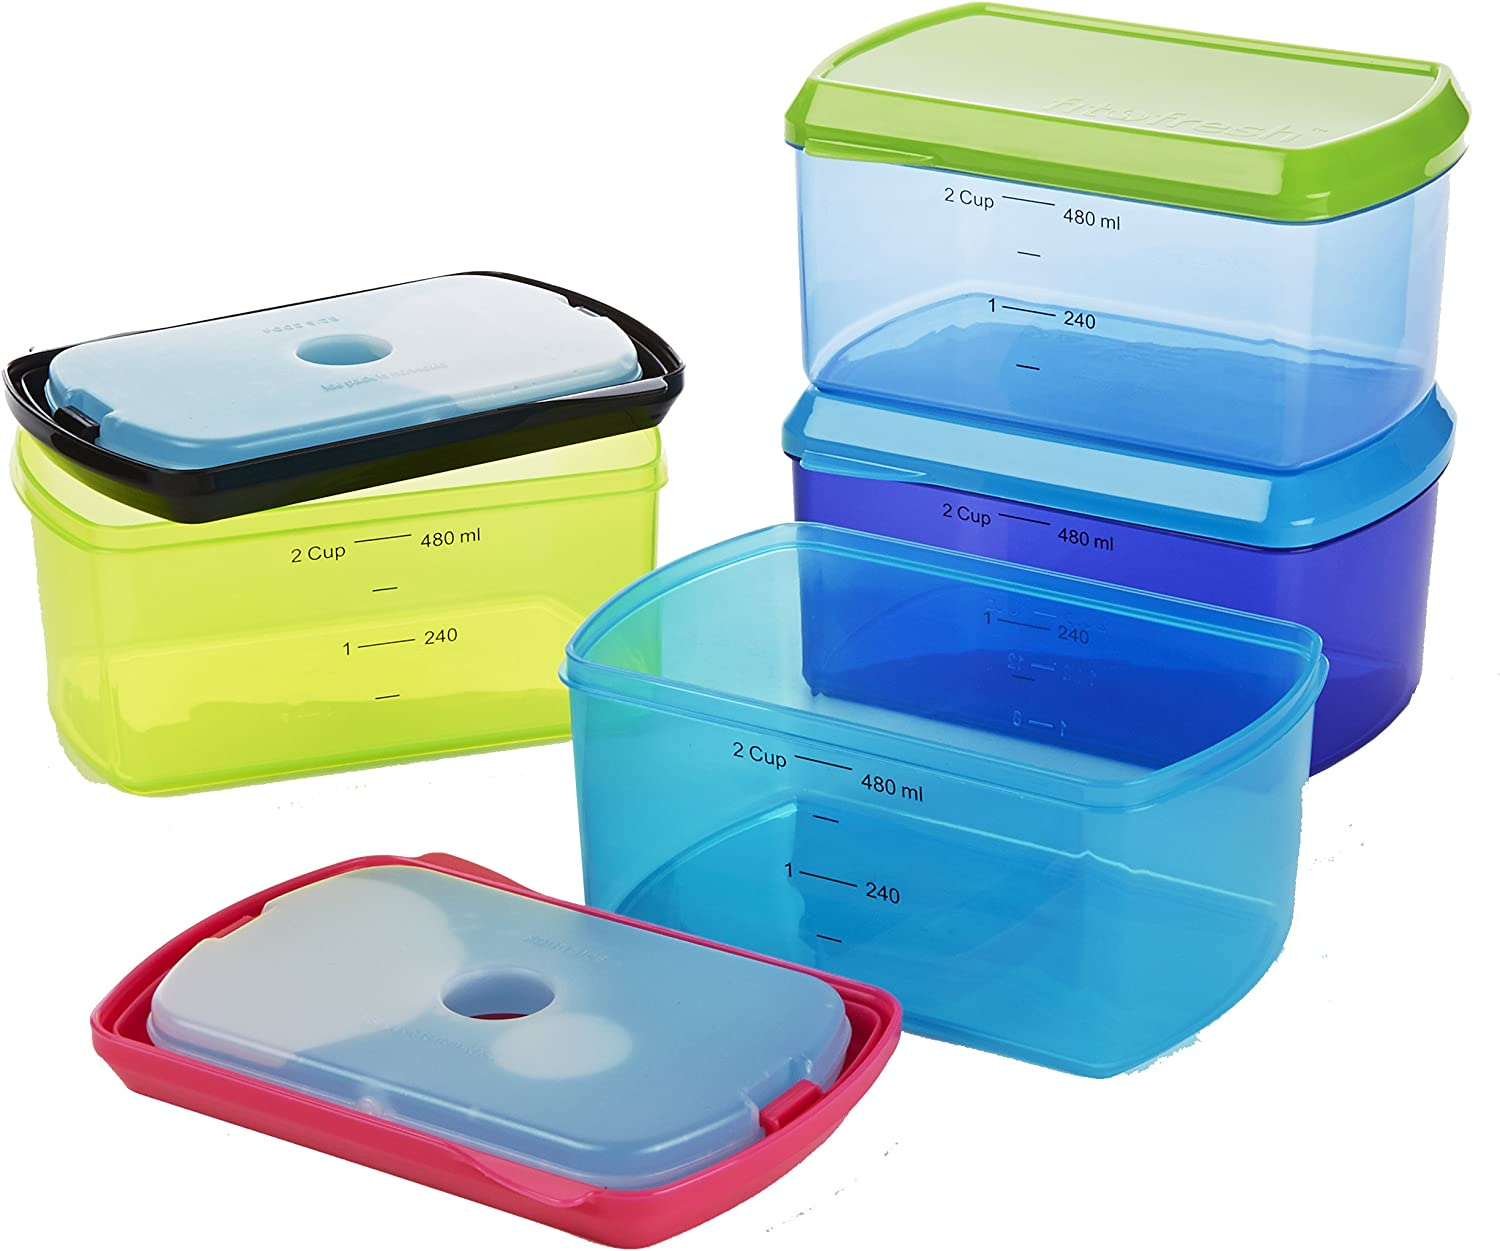 Fit & Fresh Kids' 2-Cup Chilled Containers, Set of 4 Reusable Portion Control Containers with Removable Ice Packs, BPA-Free, Freezer/Microwave/Dishwasher Safe